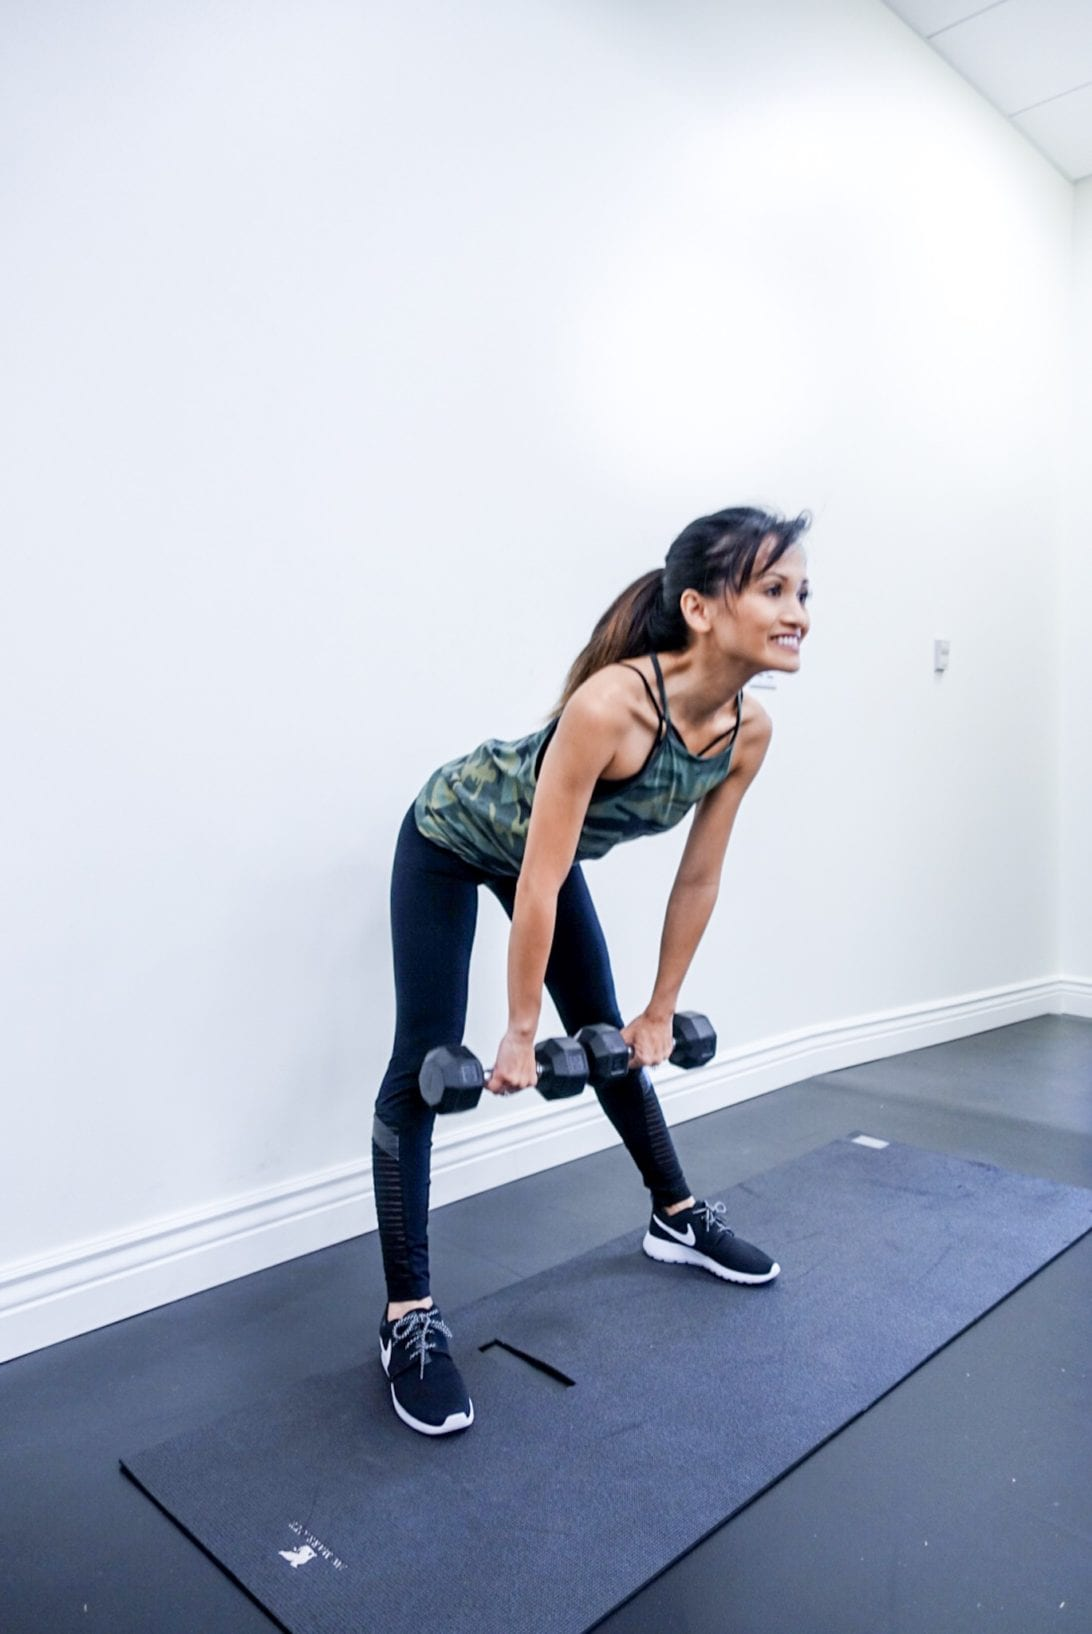 Your 6 Minutes Legs Workout by Houston fitness blogger Dawn P. Darnell - deadlifts, dumbell deadlifts, stiff-legged deadlifts, booty workout, at home workout, dumbell exercise